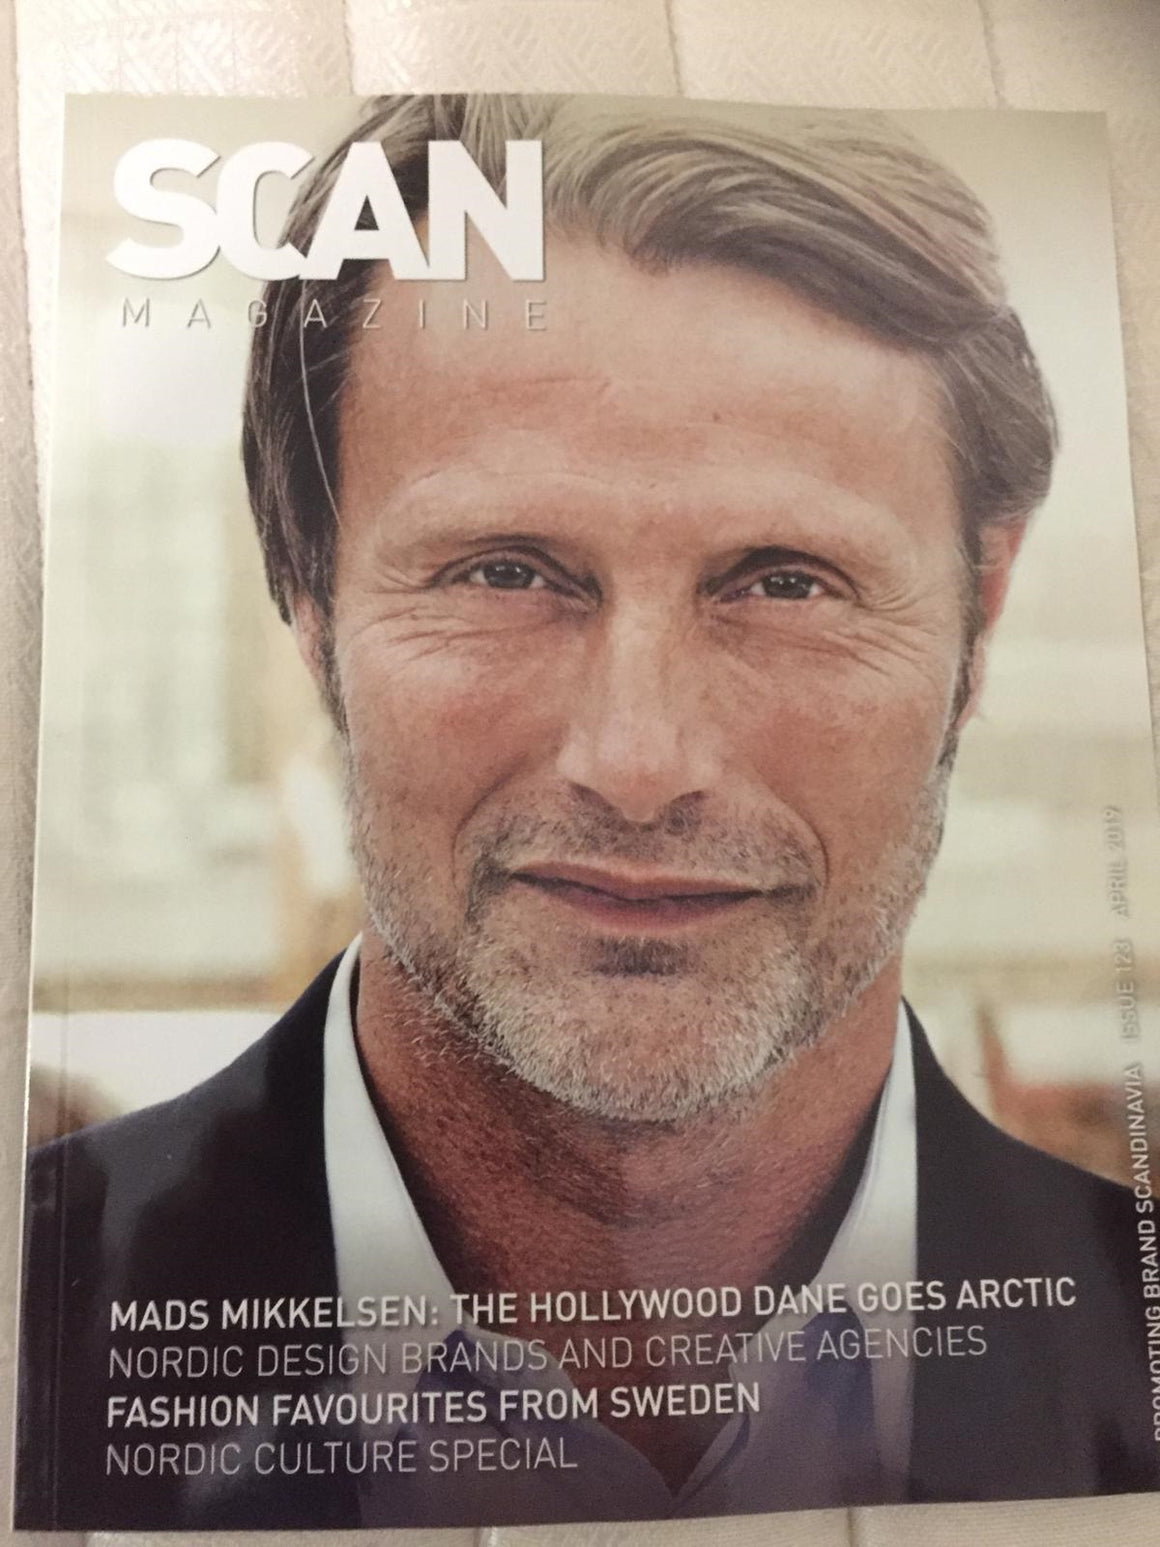 Scan Magazine April 2019: MADS MIKKELSEN COVER AND FEATURE